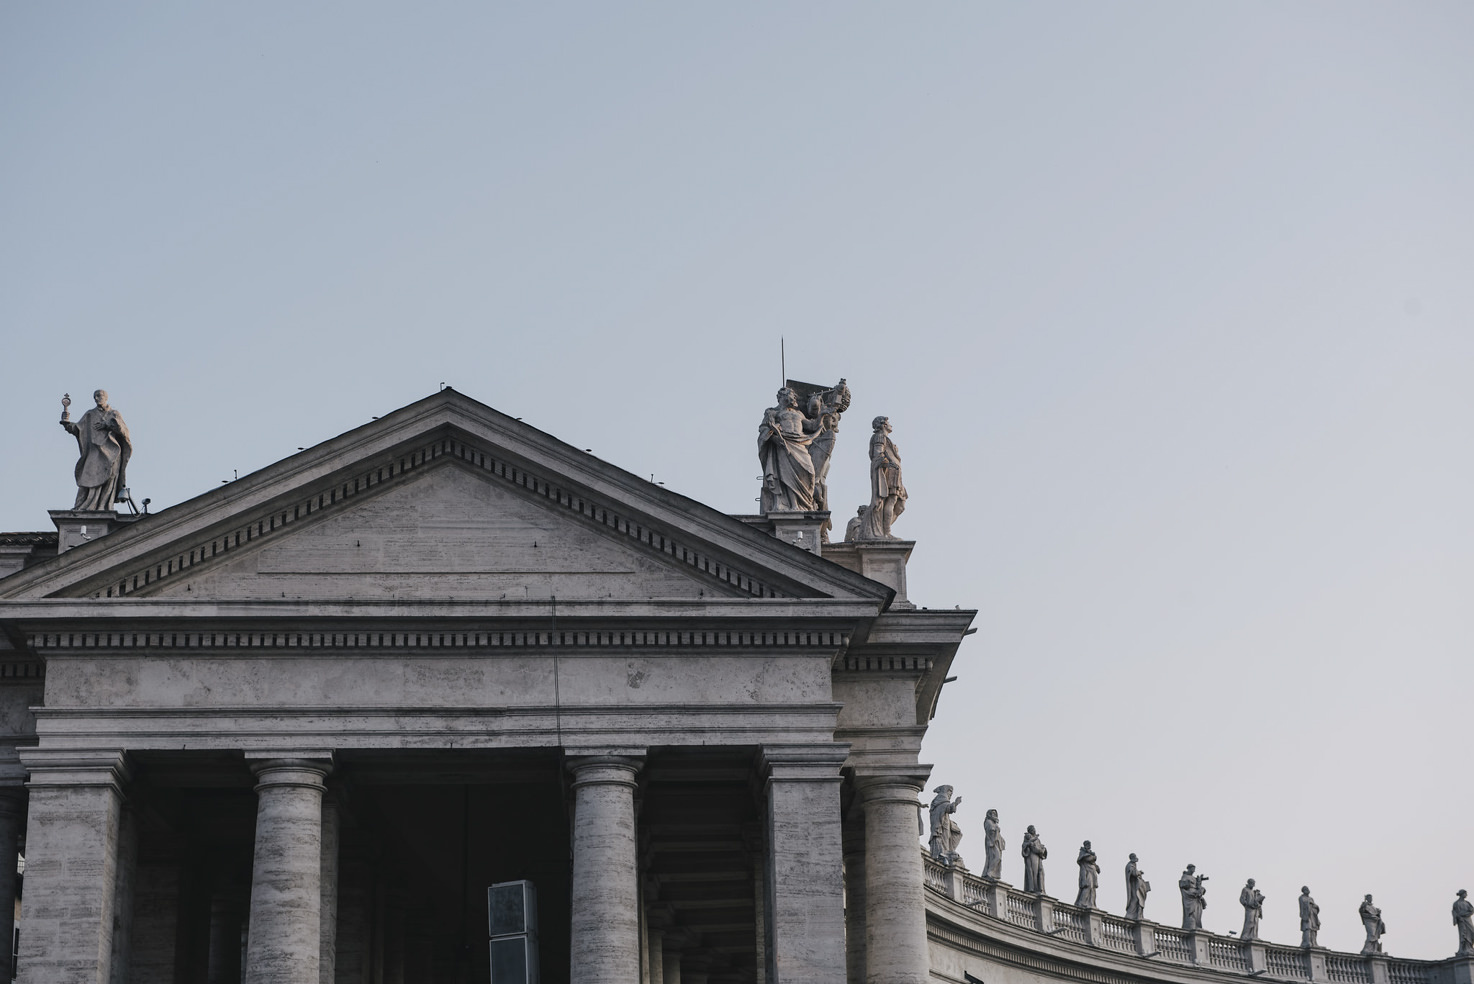 Detail of St. Peter's Square, Rome